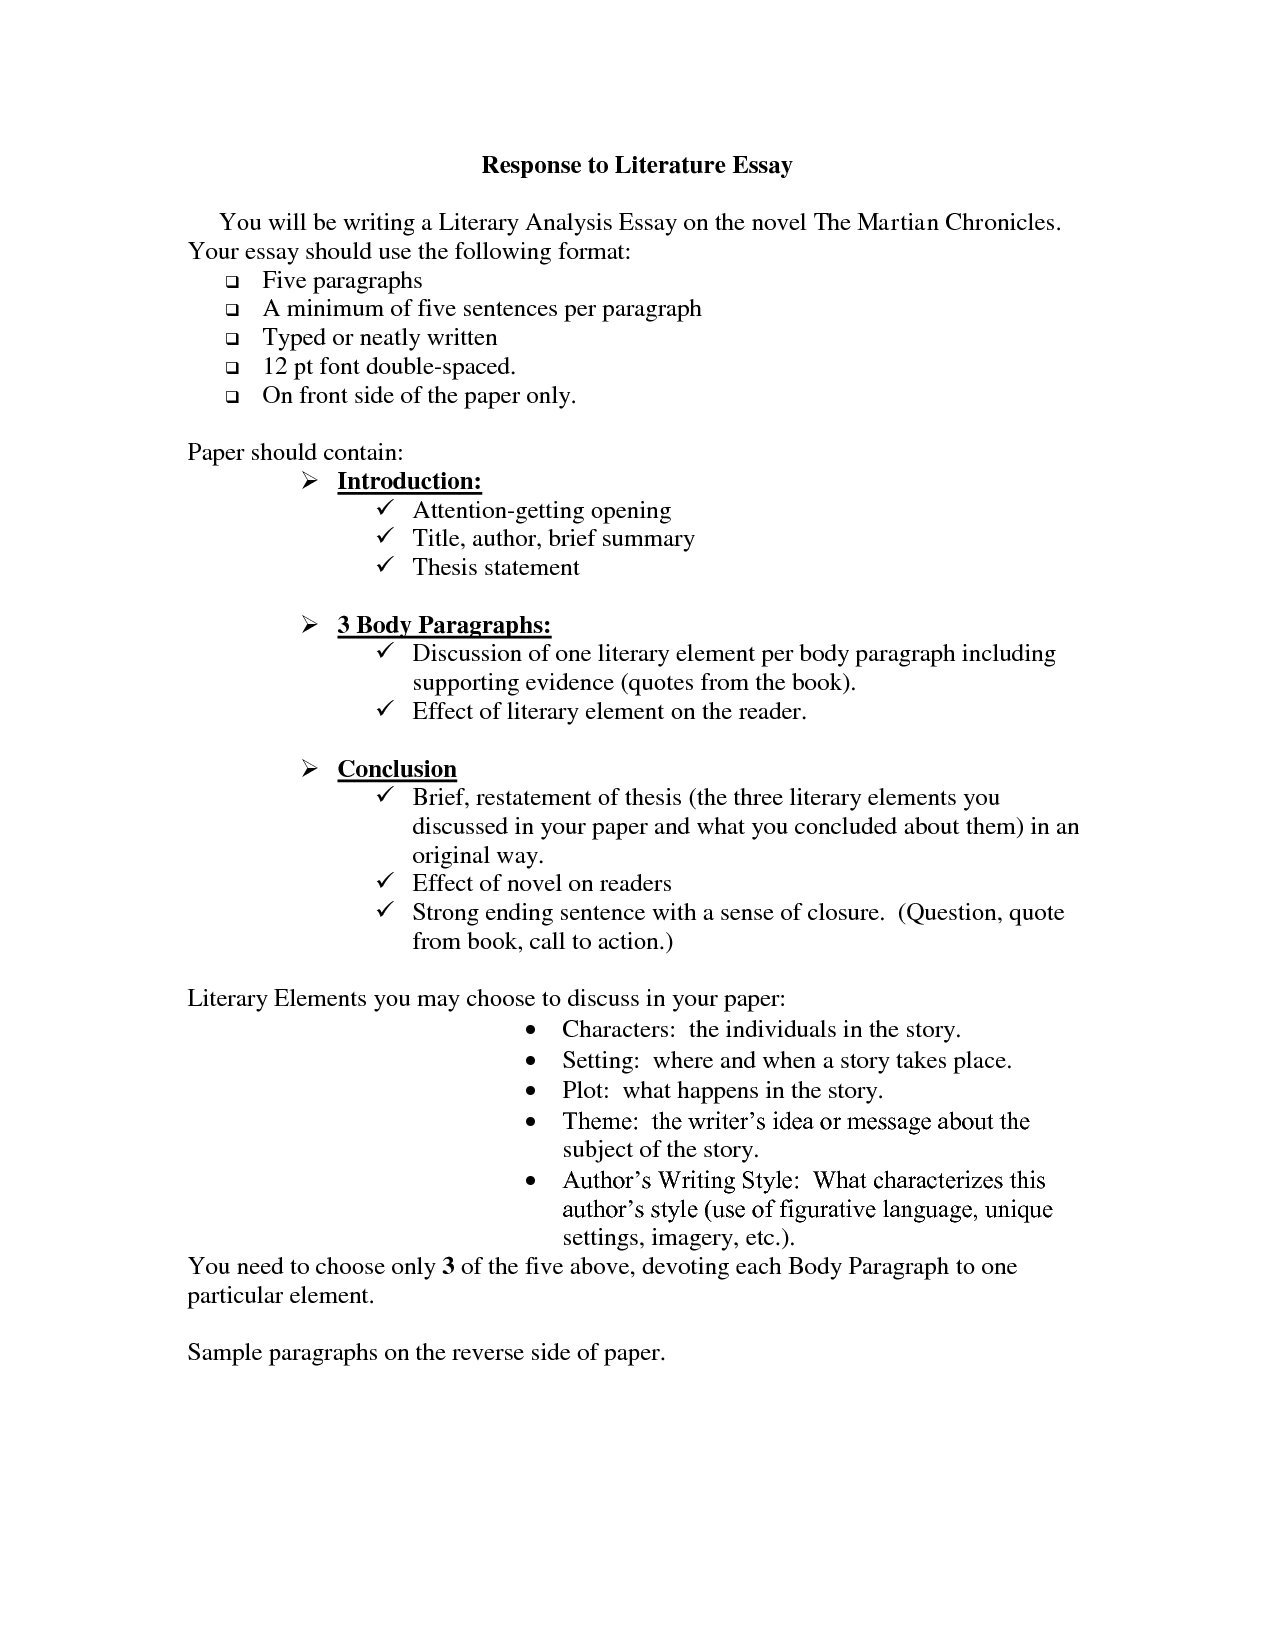 006 Essay Example Brilliant Ideas Of Resume Cv Cover Letter Poetry Reflection Paper Poem Parison Creative Explication Formidable Trifles Questions Feminism Topics Full